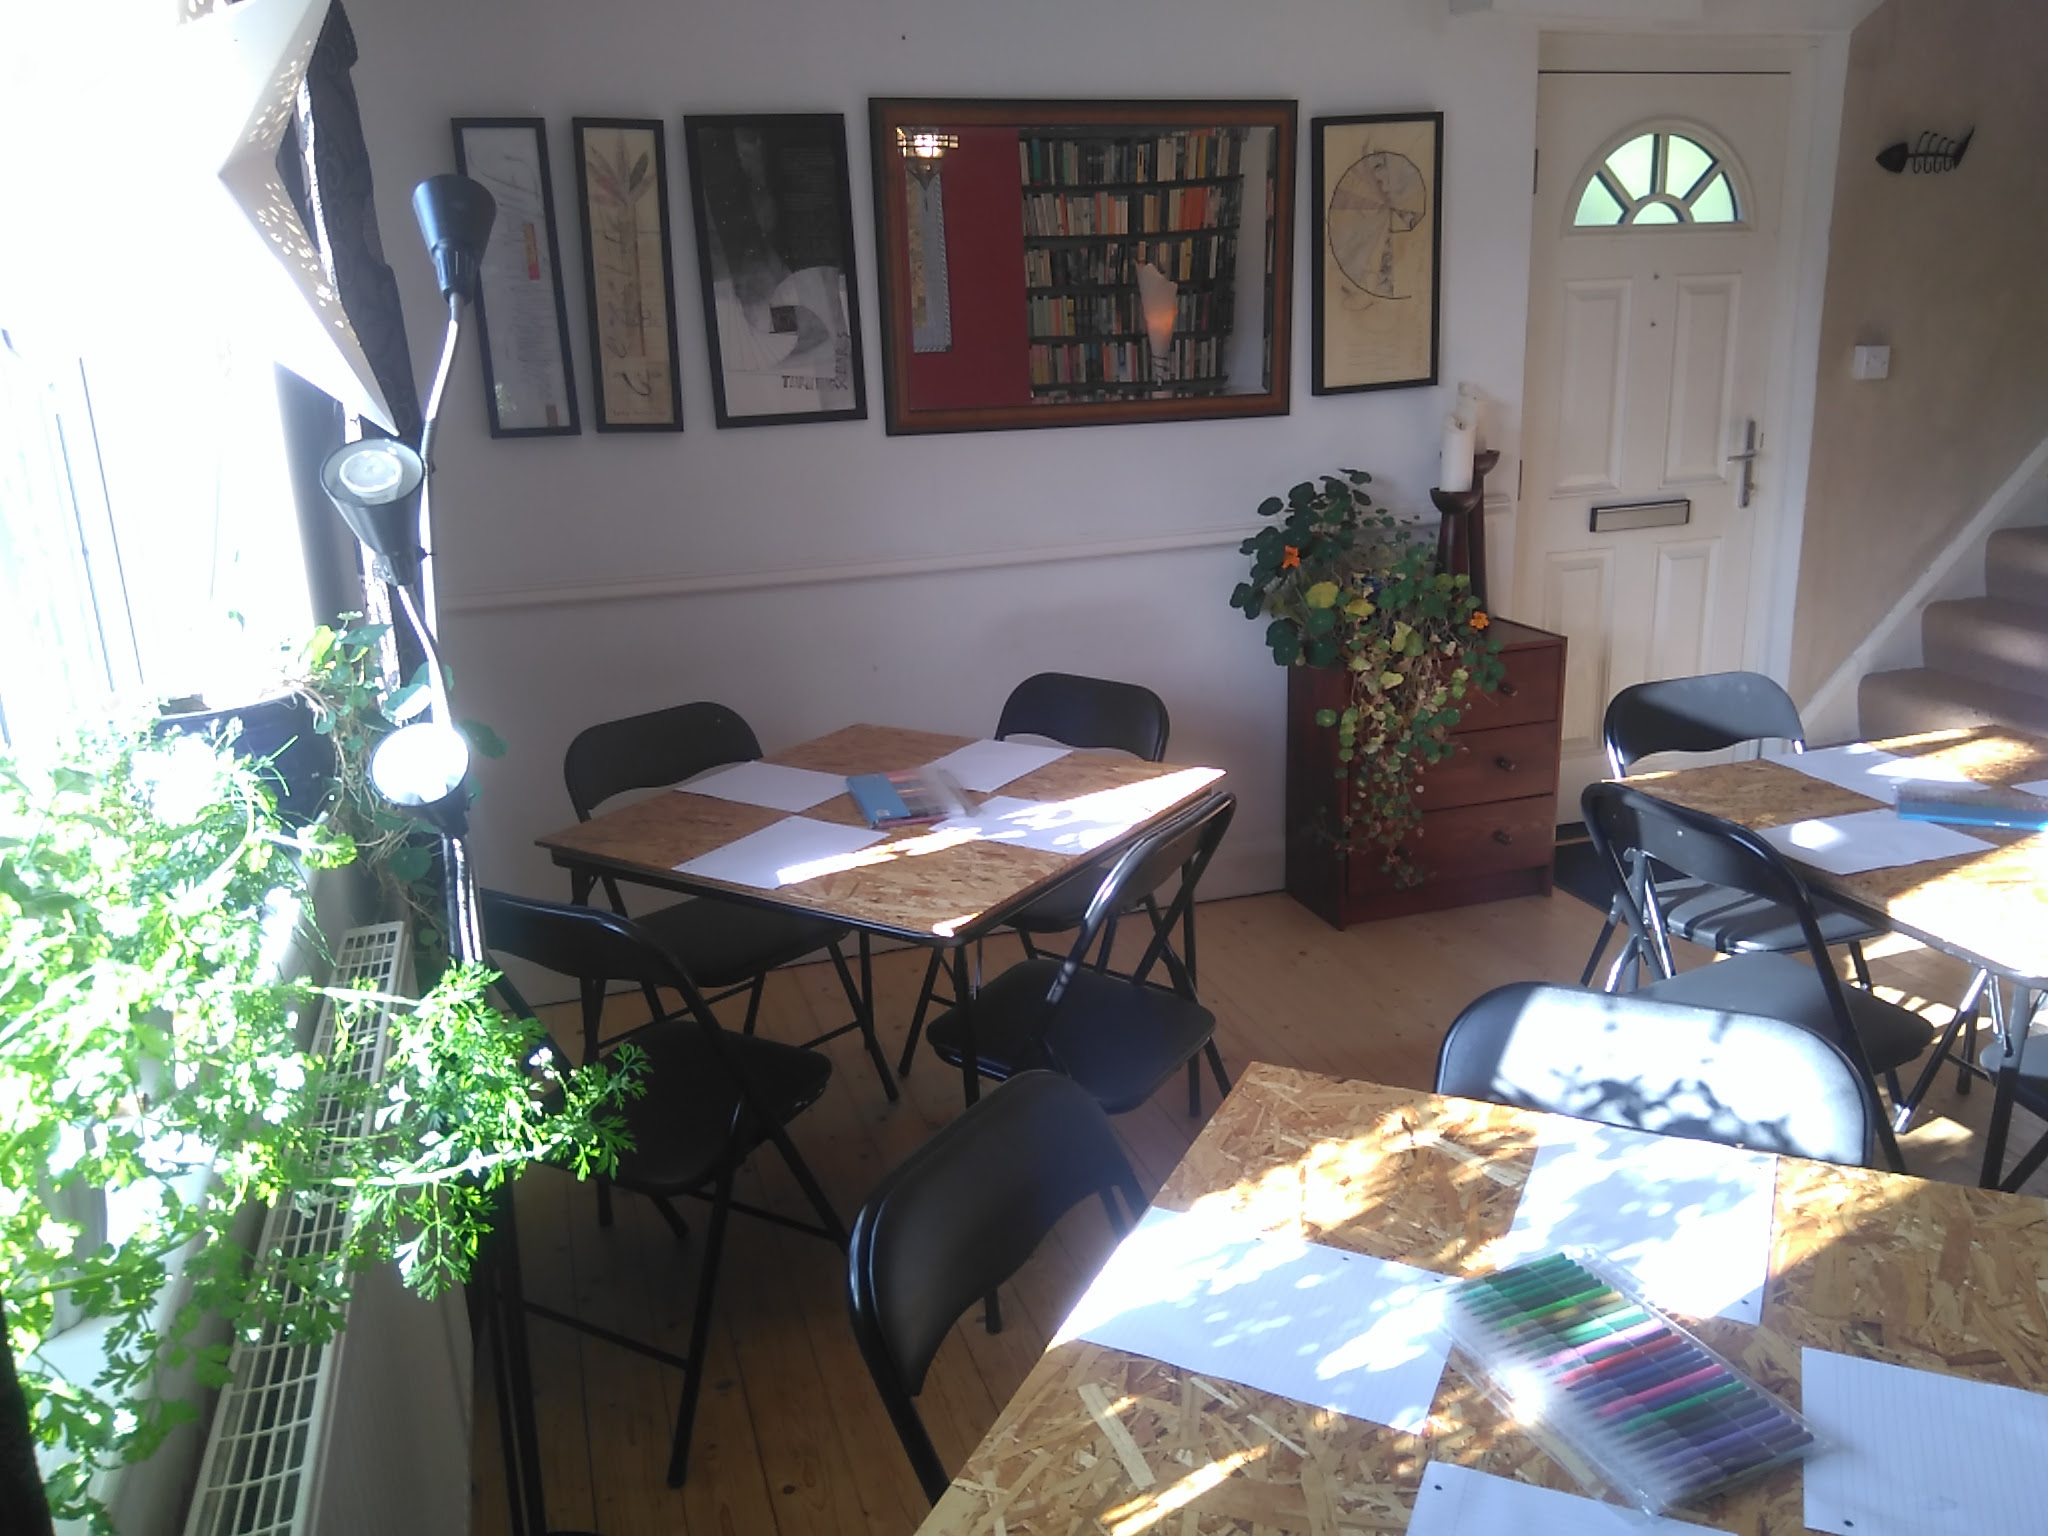 Tables, plants and paintings - the workshop space for summer workshops